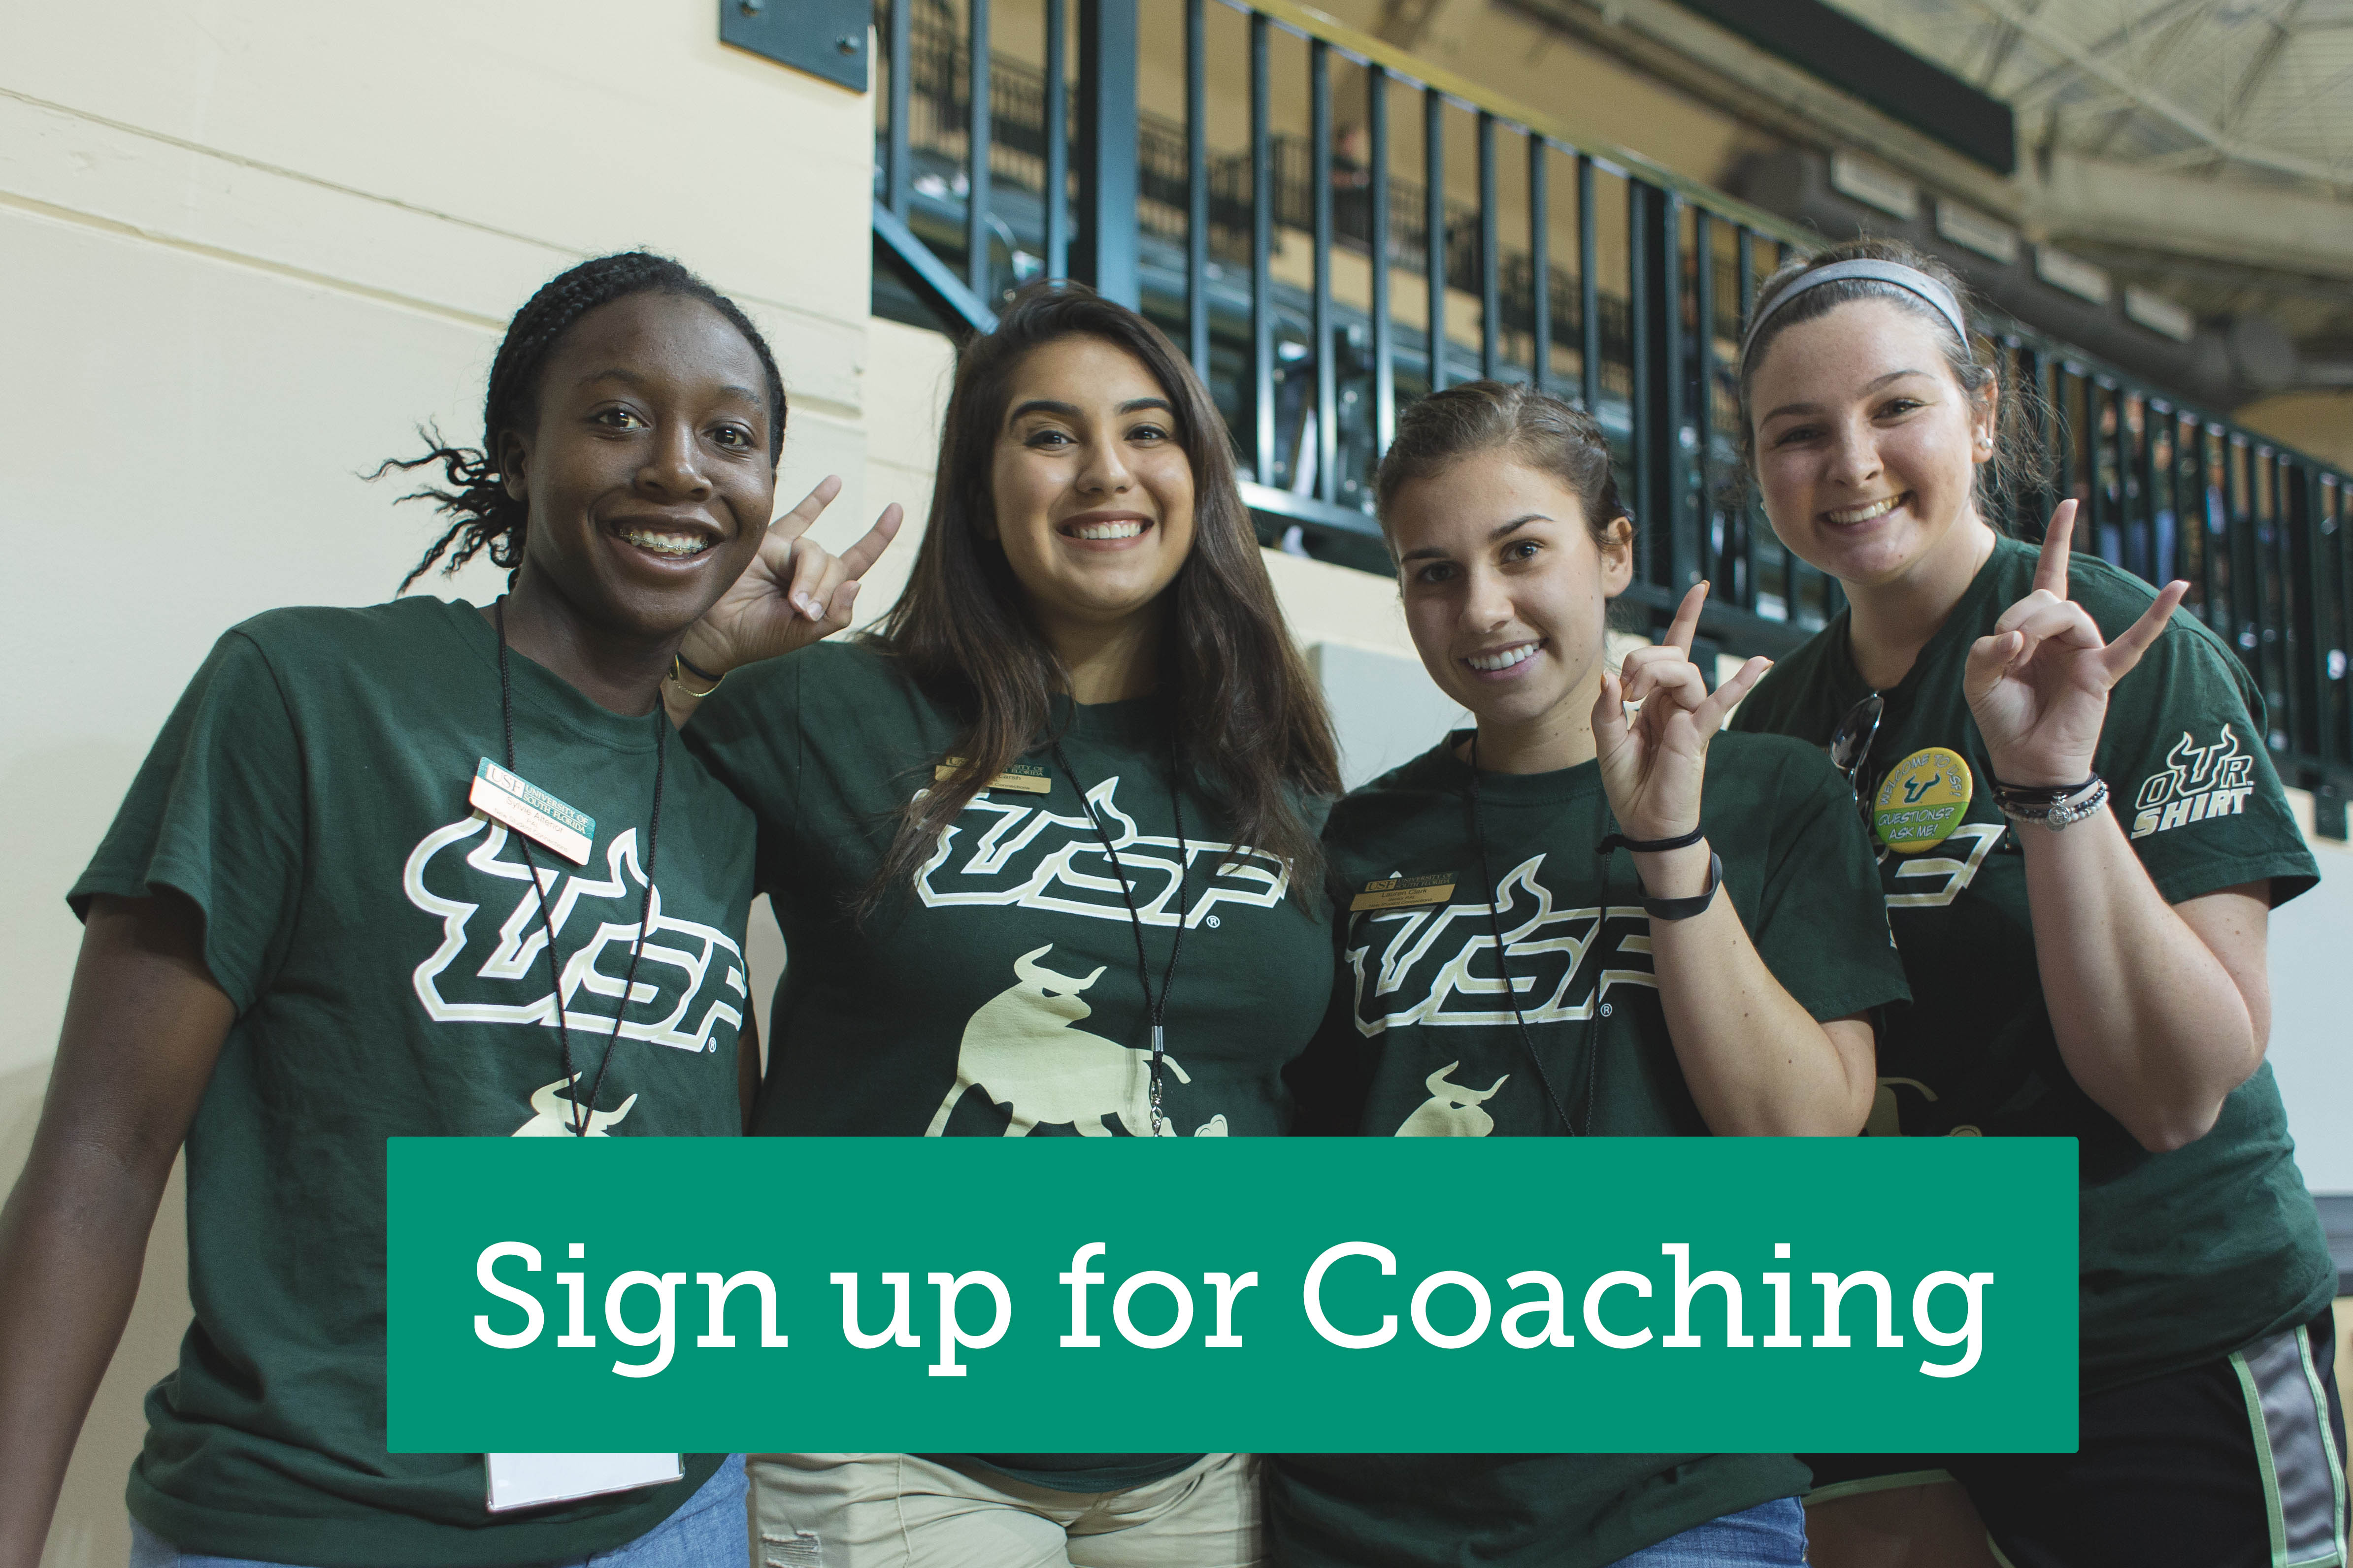 Sign up for coaching